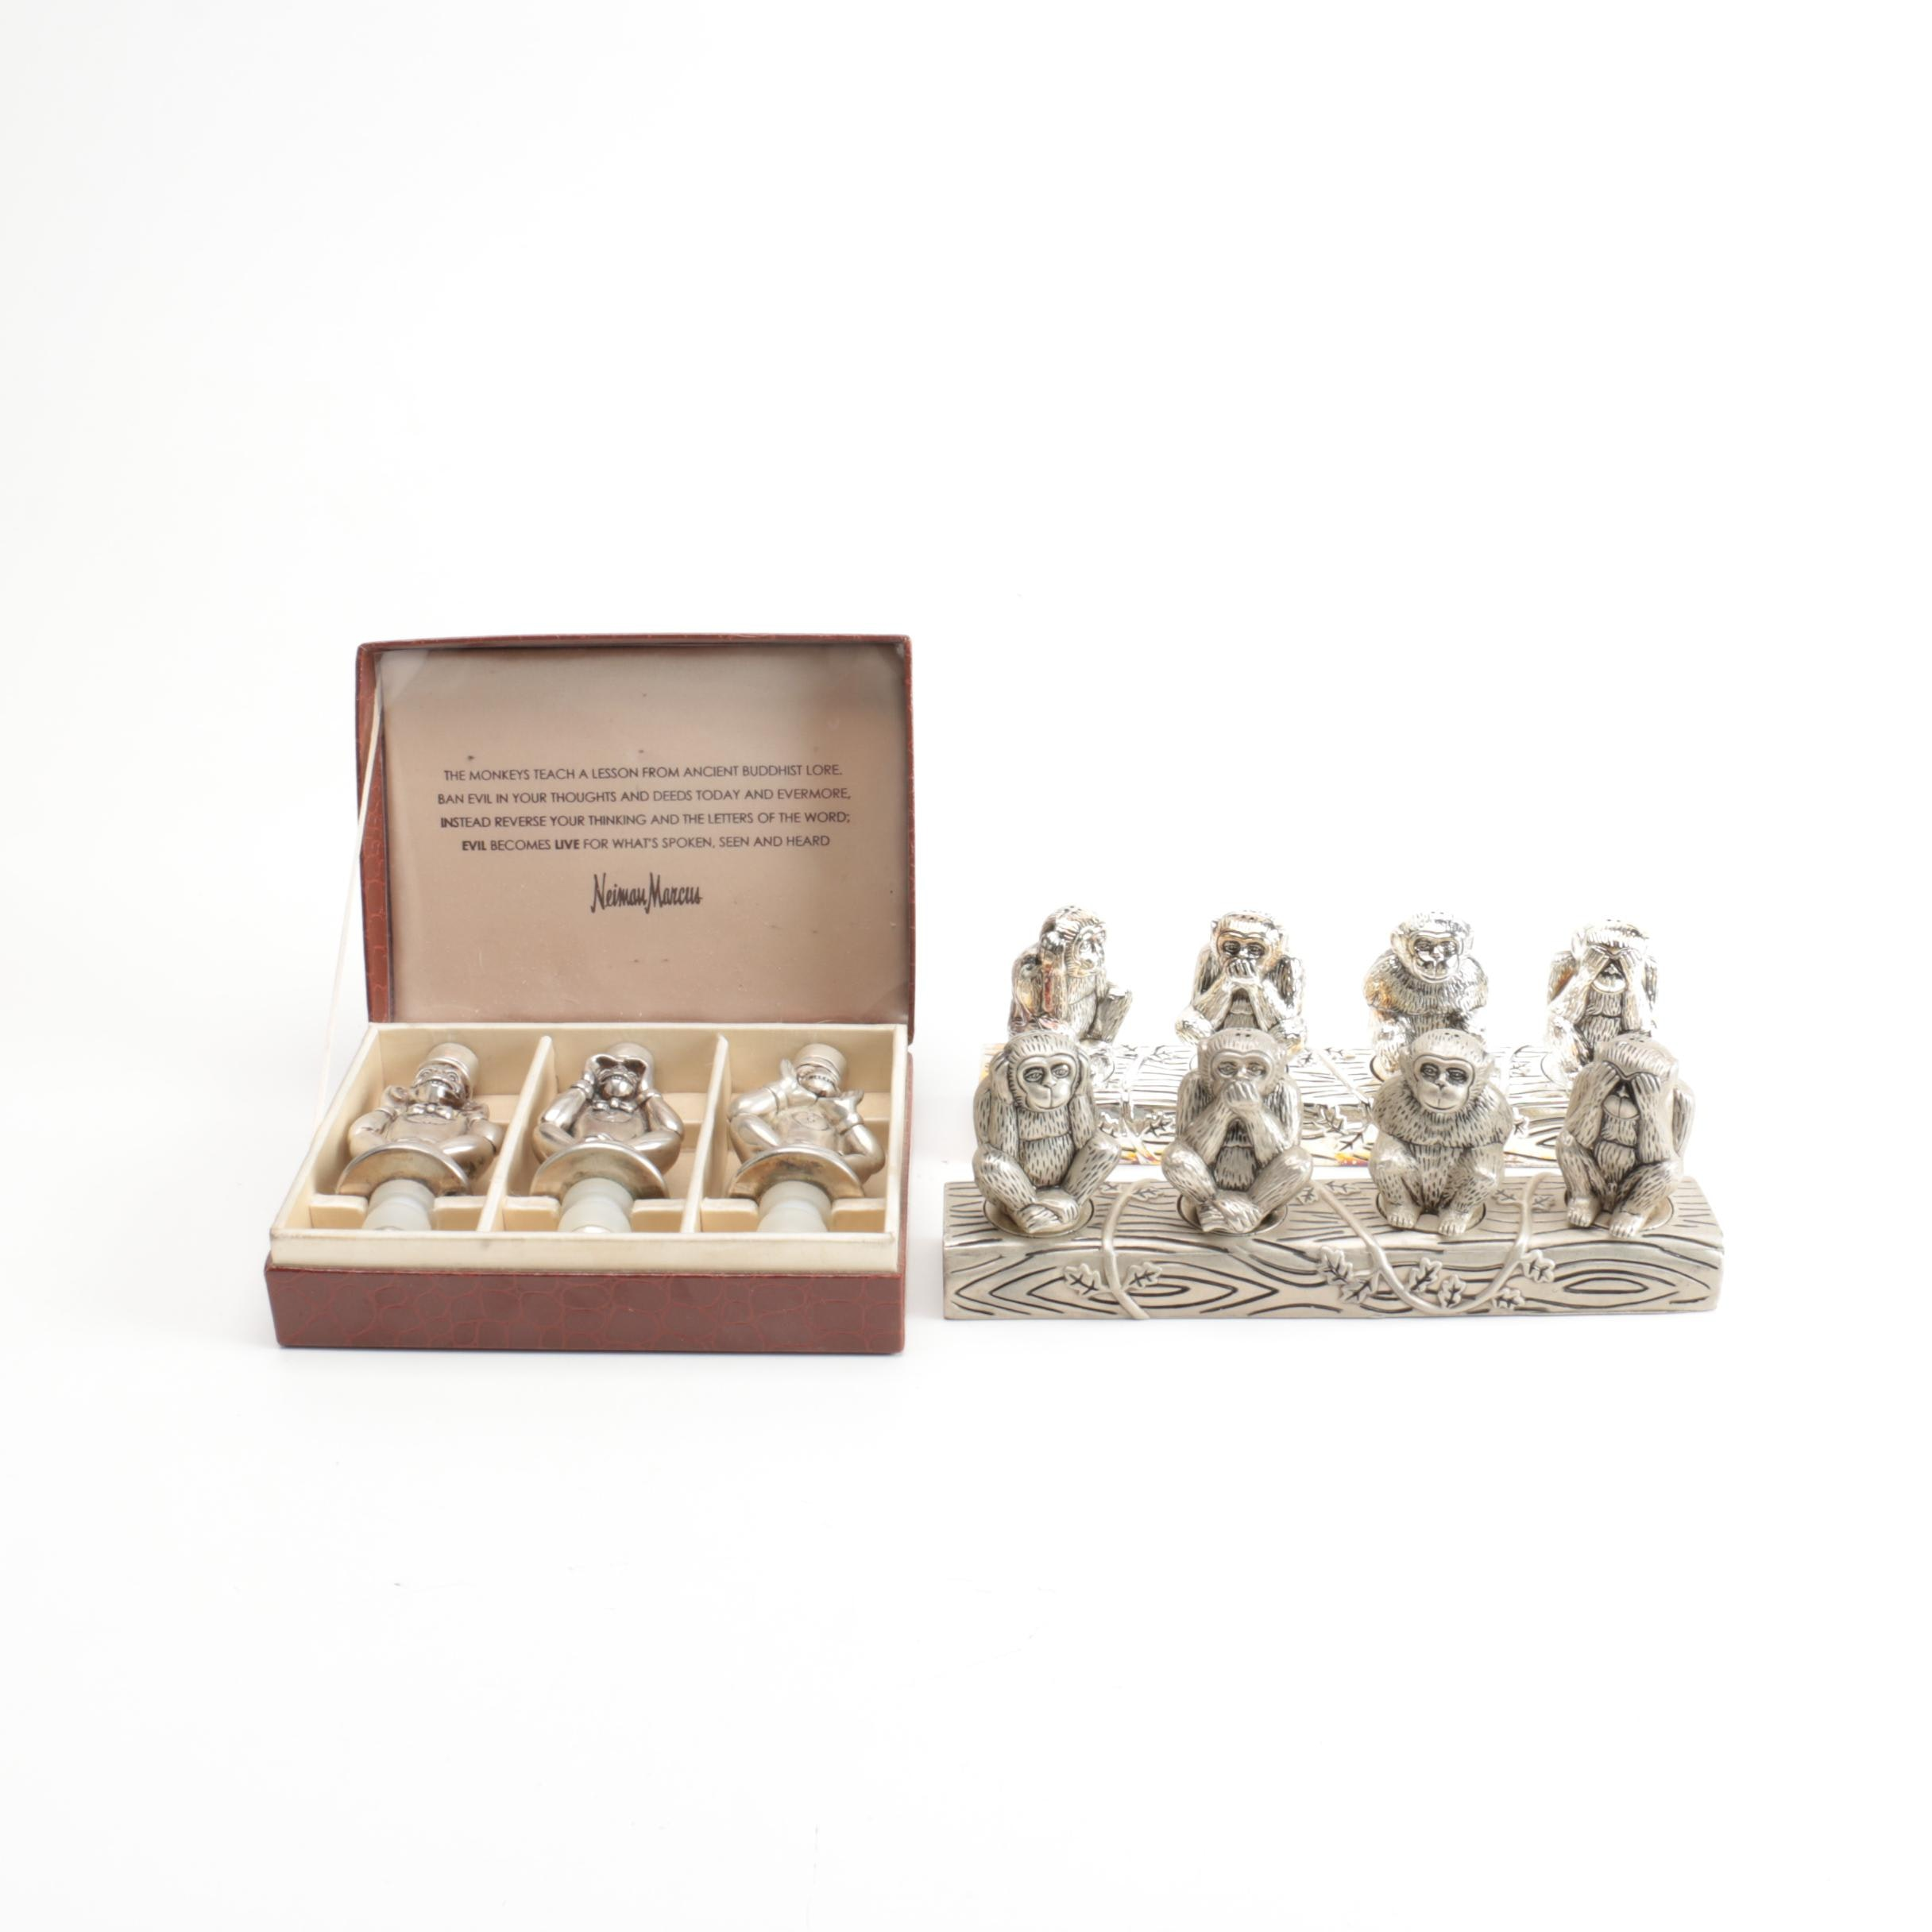 """Nieman Marcus """"Three Wise Monkeys"""" Bottle Stoppers with Shakers"""